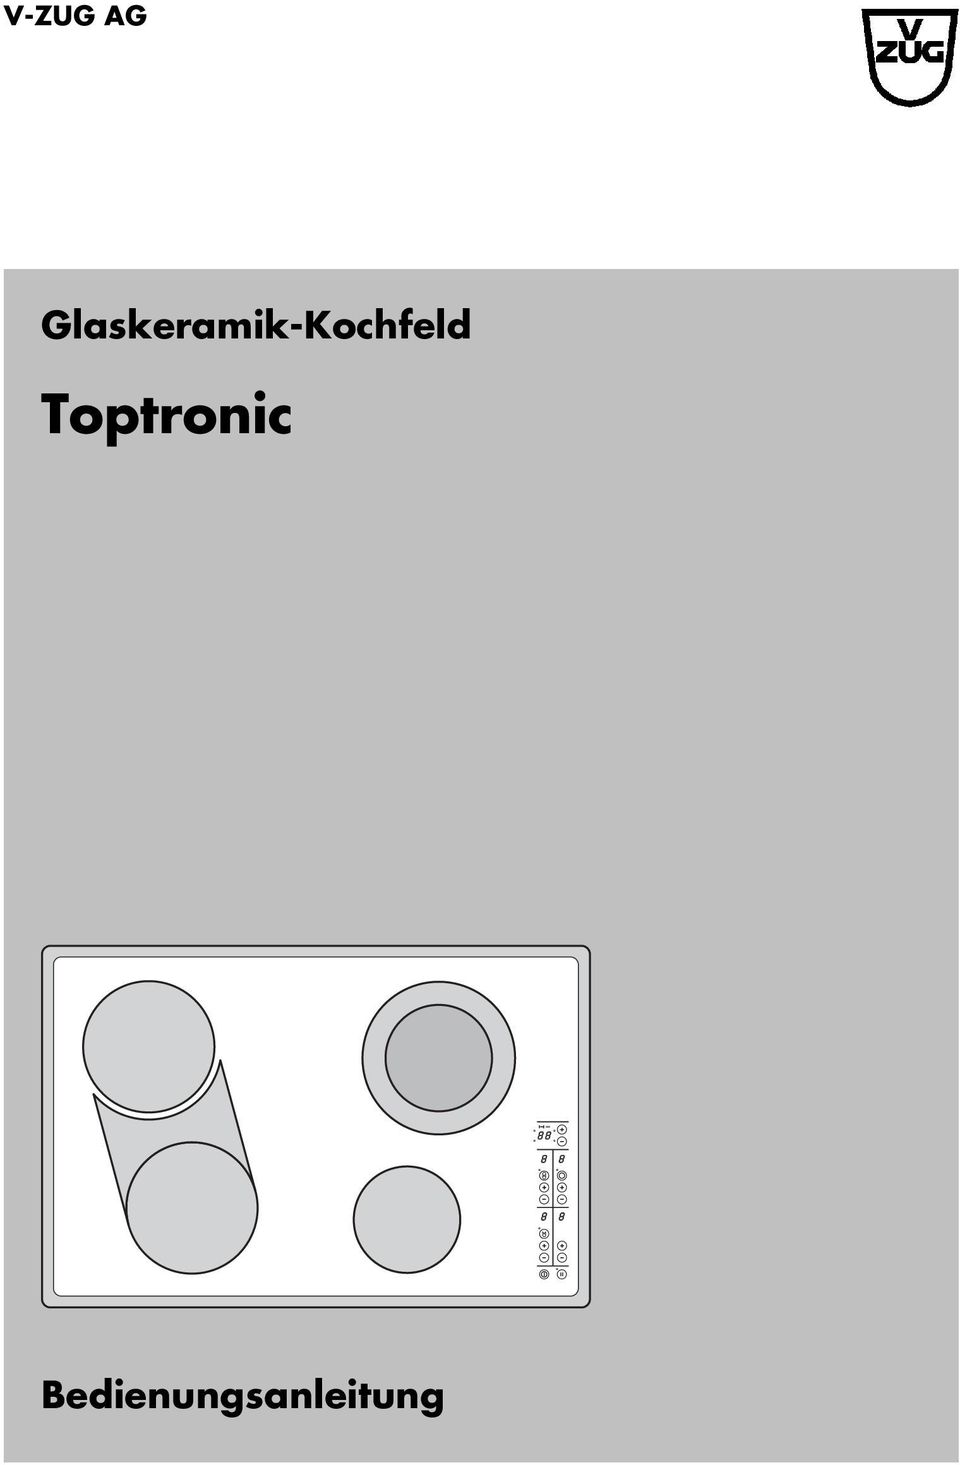 v zug ag glaskeramik kochfeld toptronic bedienungsanleitung pdf. Black Bedroom Furniture Sets. Home Design Ideas